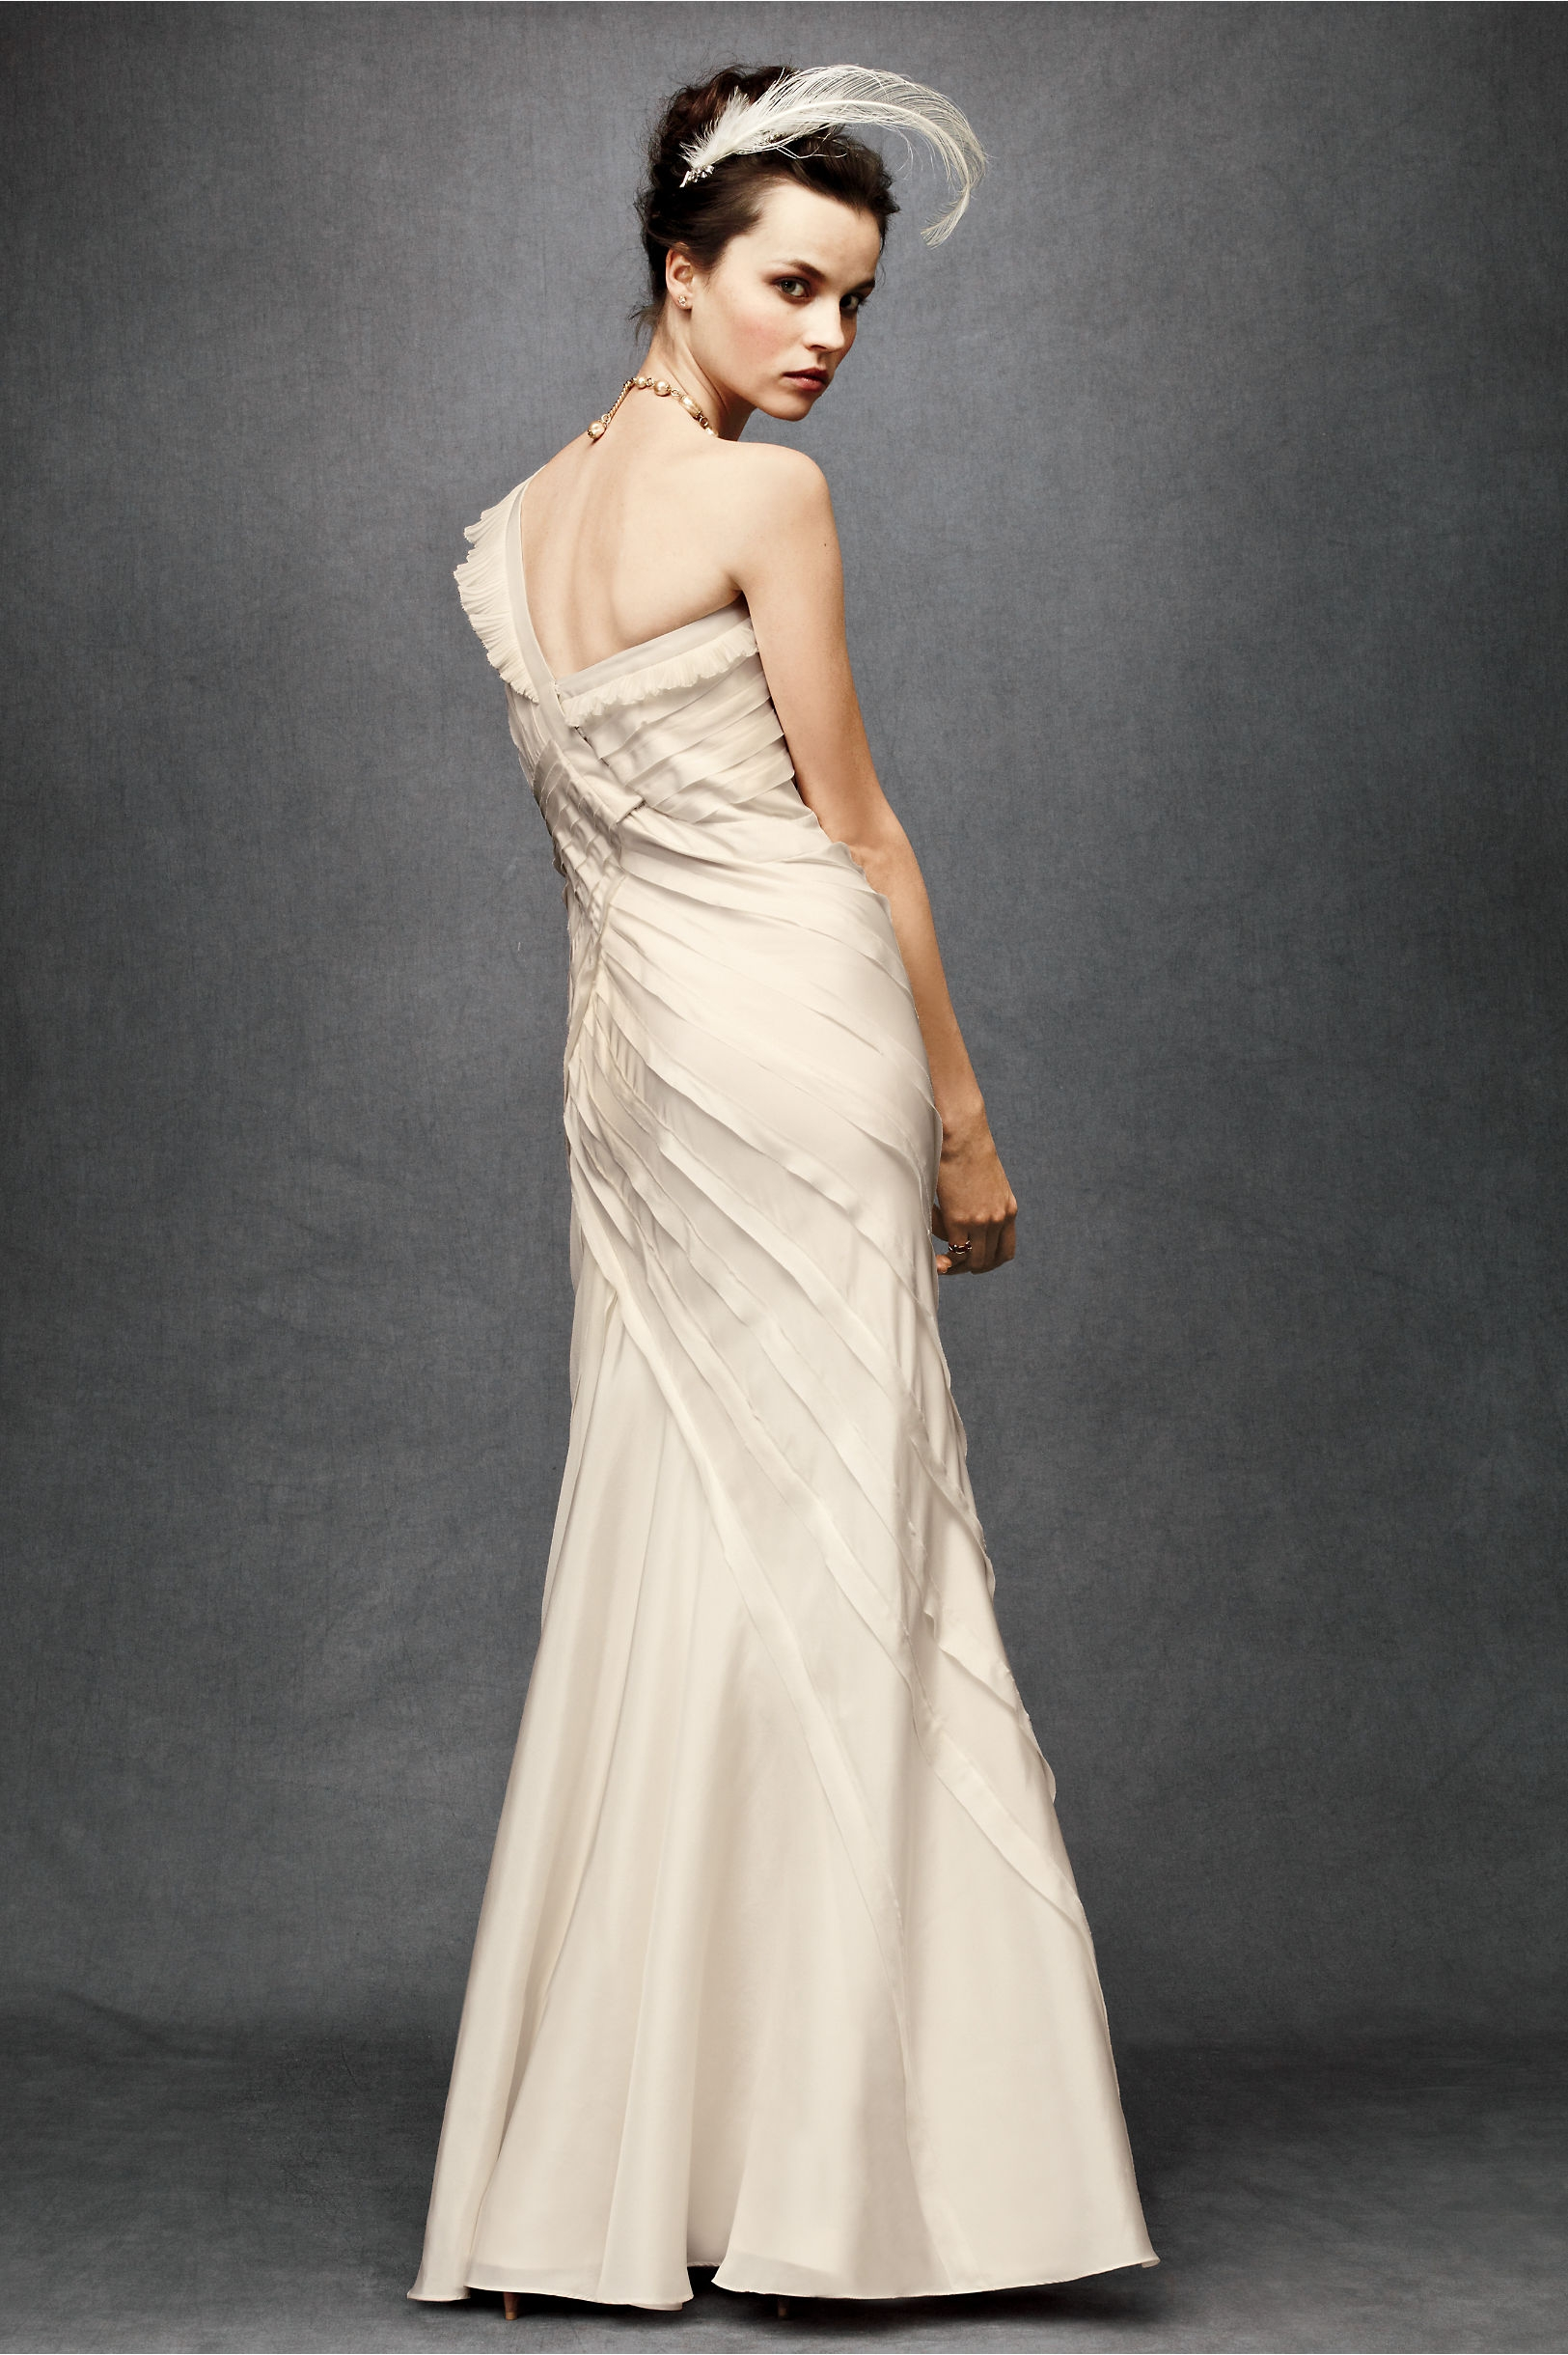 Ribboned-silk-wedding-dress-2011-bhldn-ivory-one-shoulder-back.original